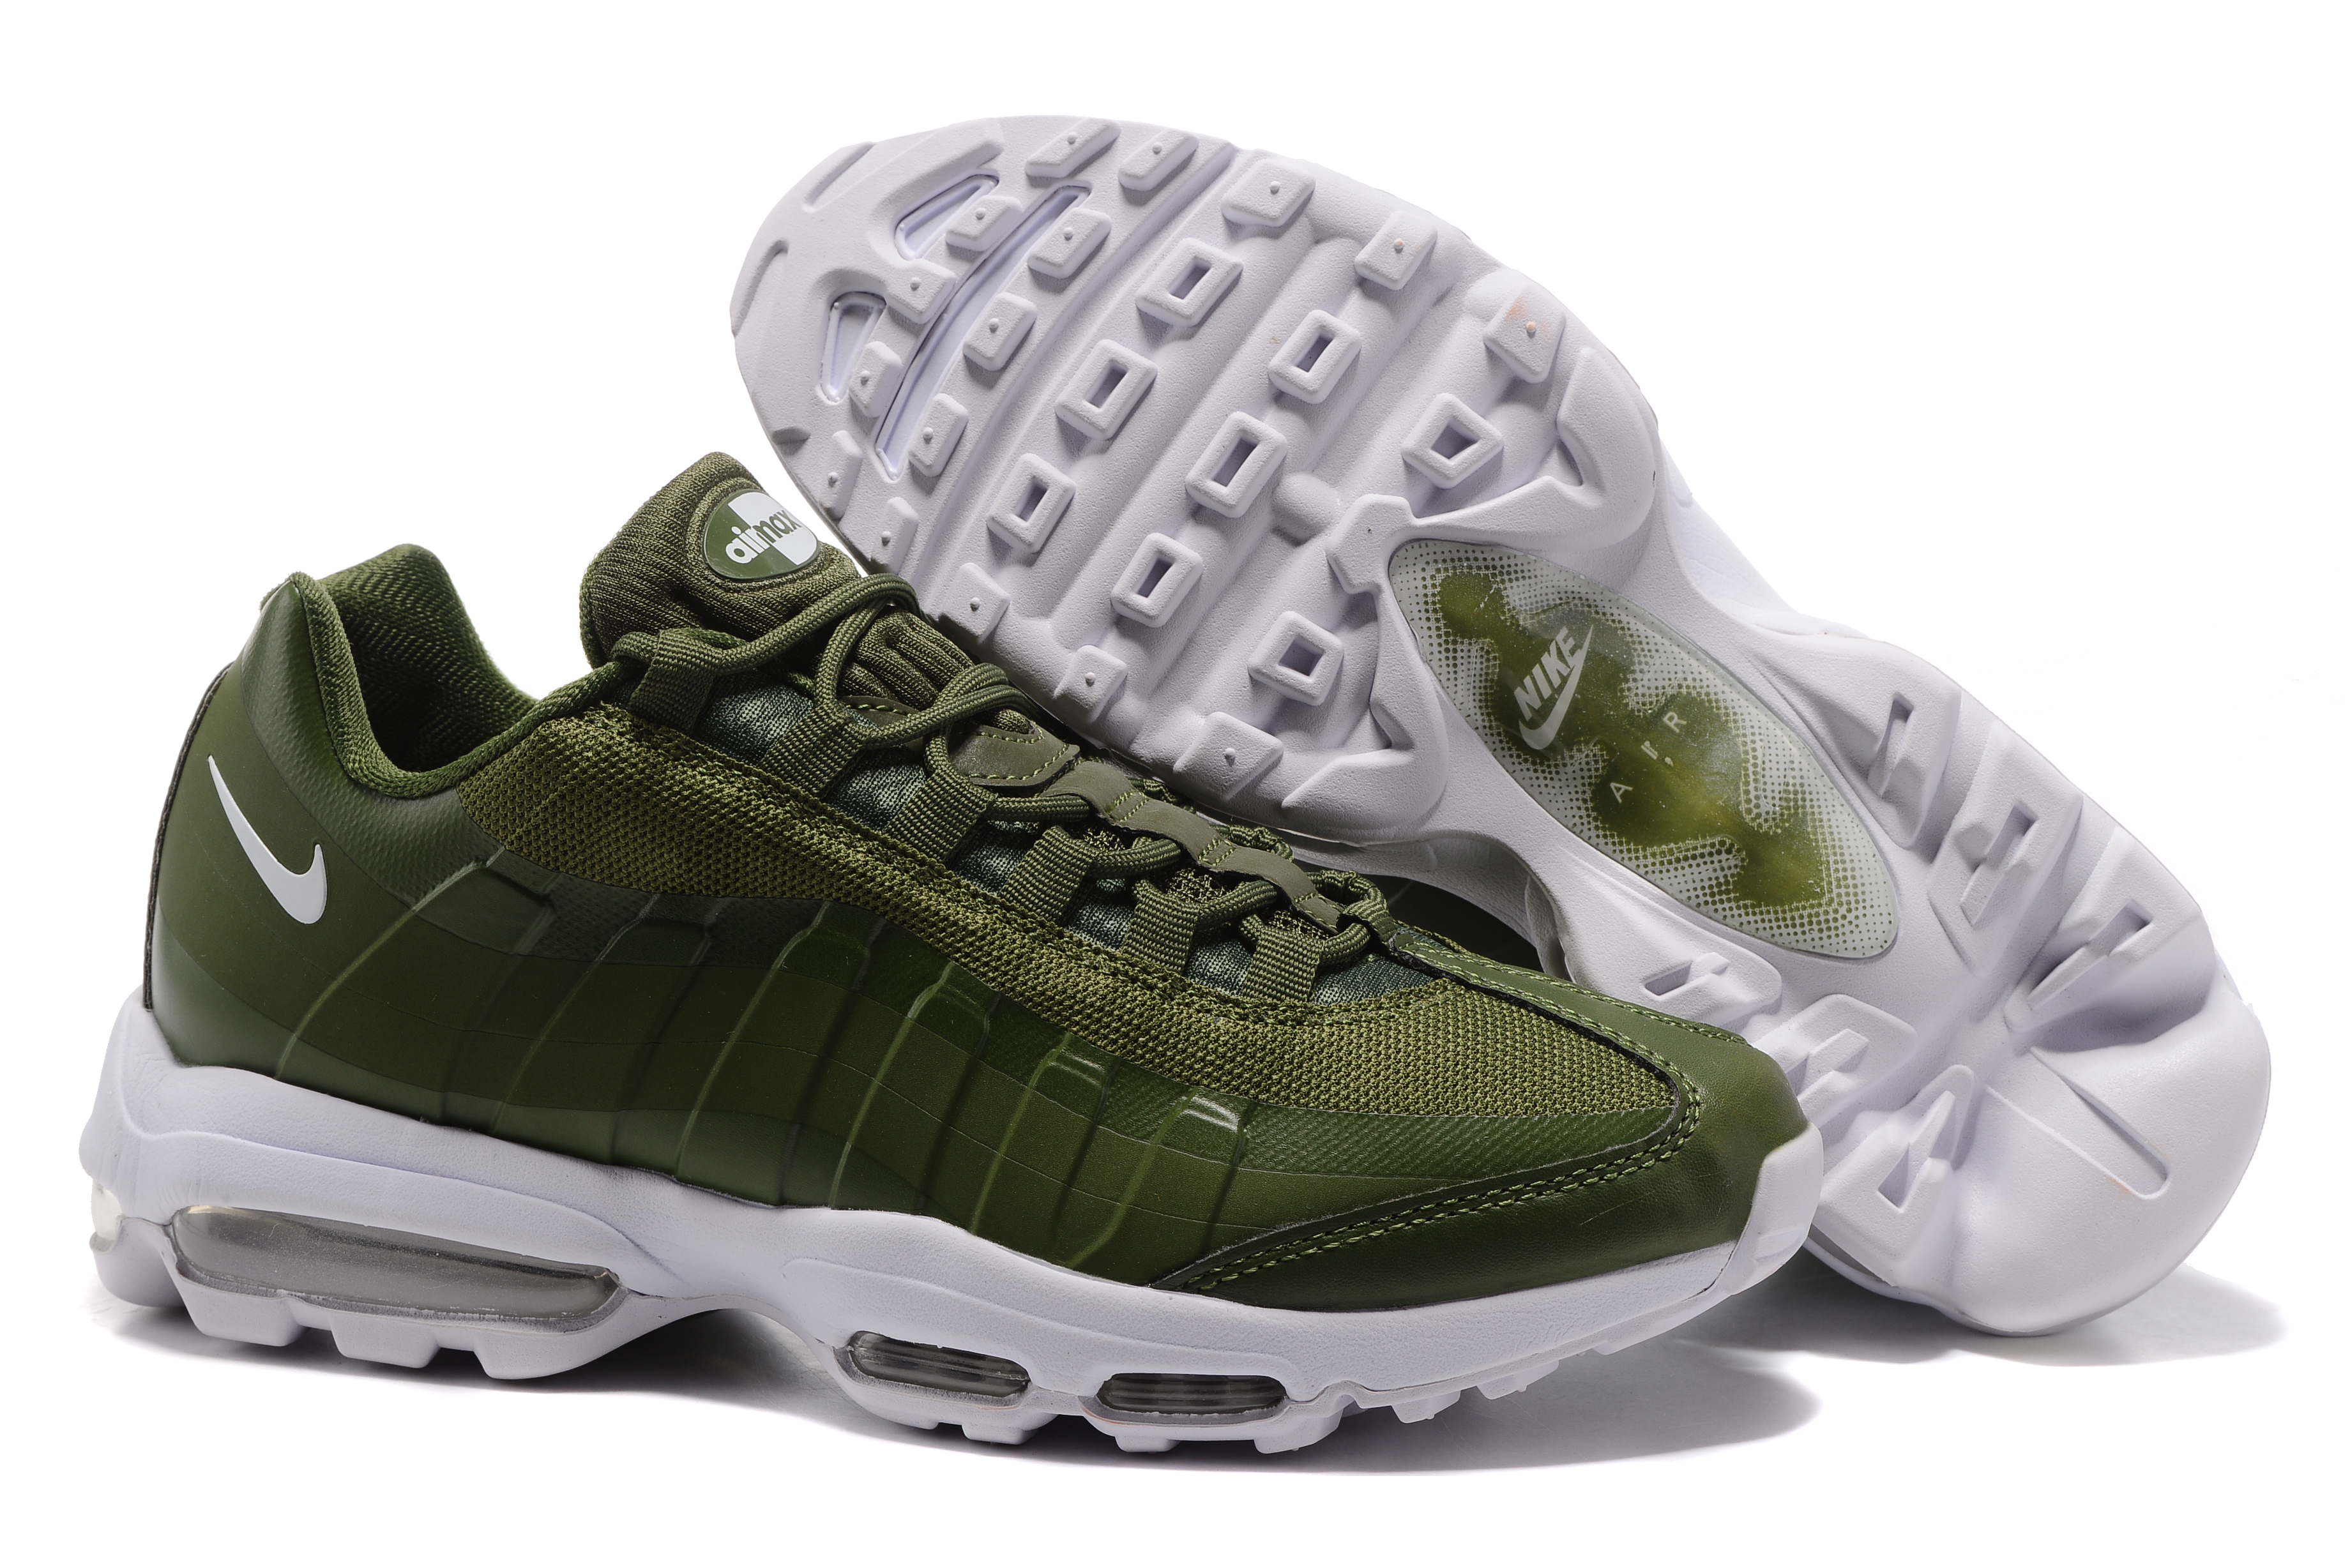 Nike Air Max 95 Green White Shoes